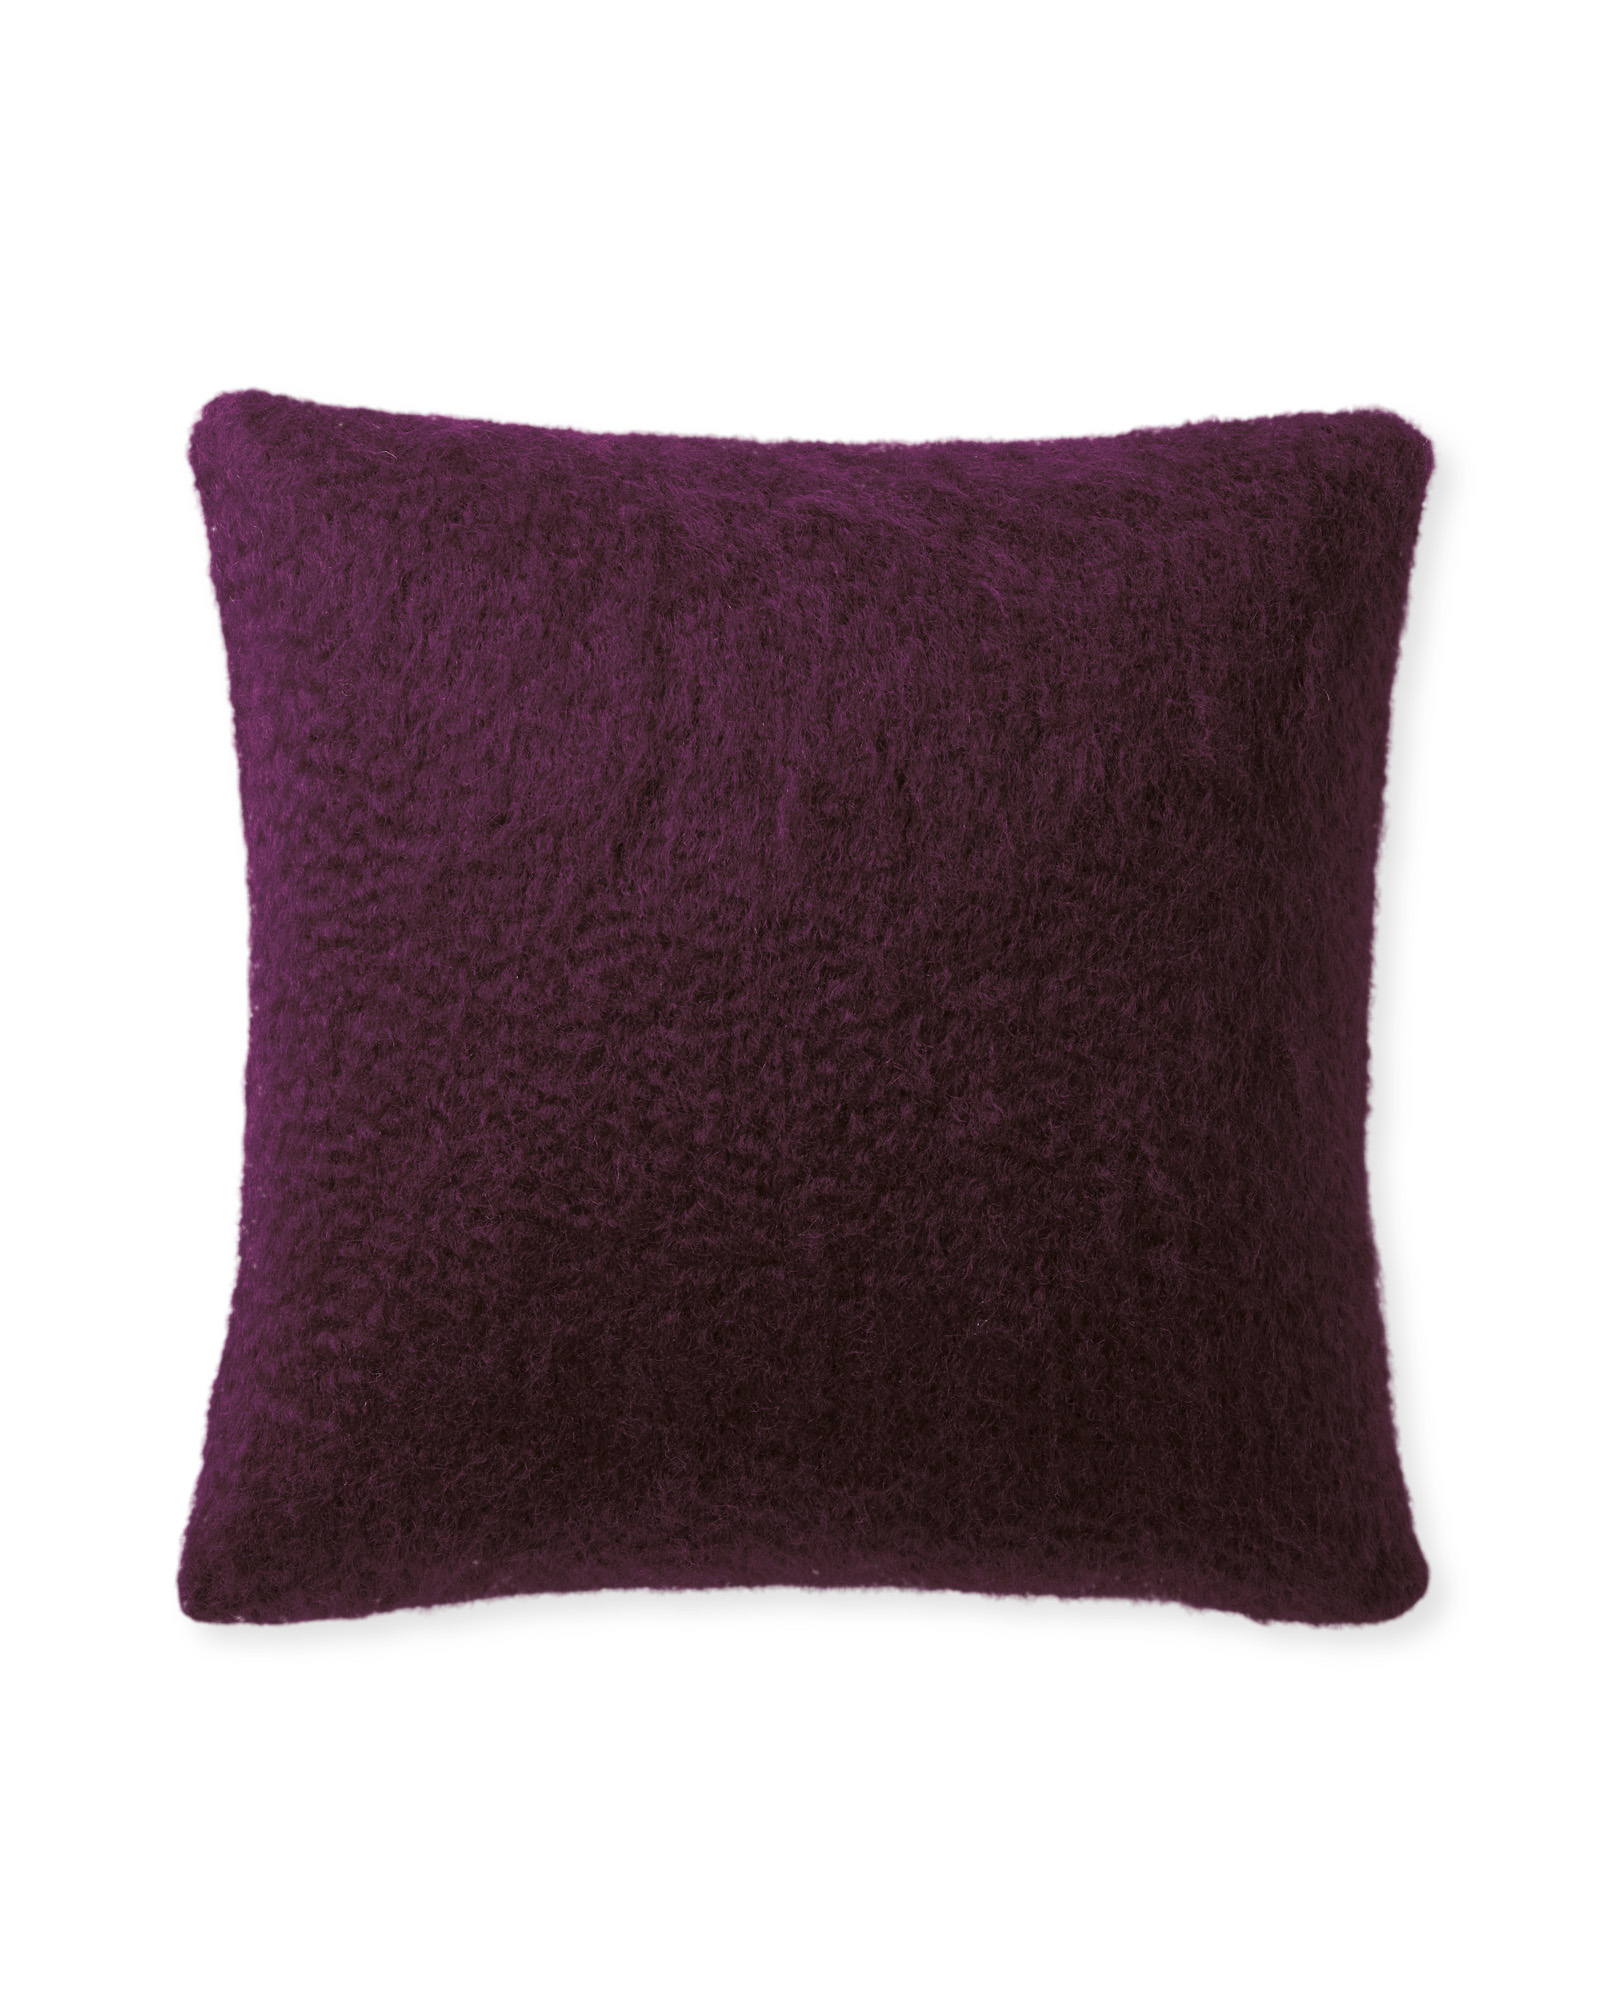 Albion Pillow Cover, Merlot